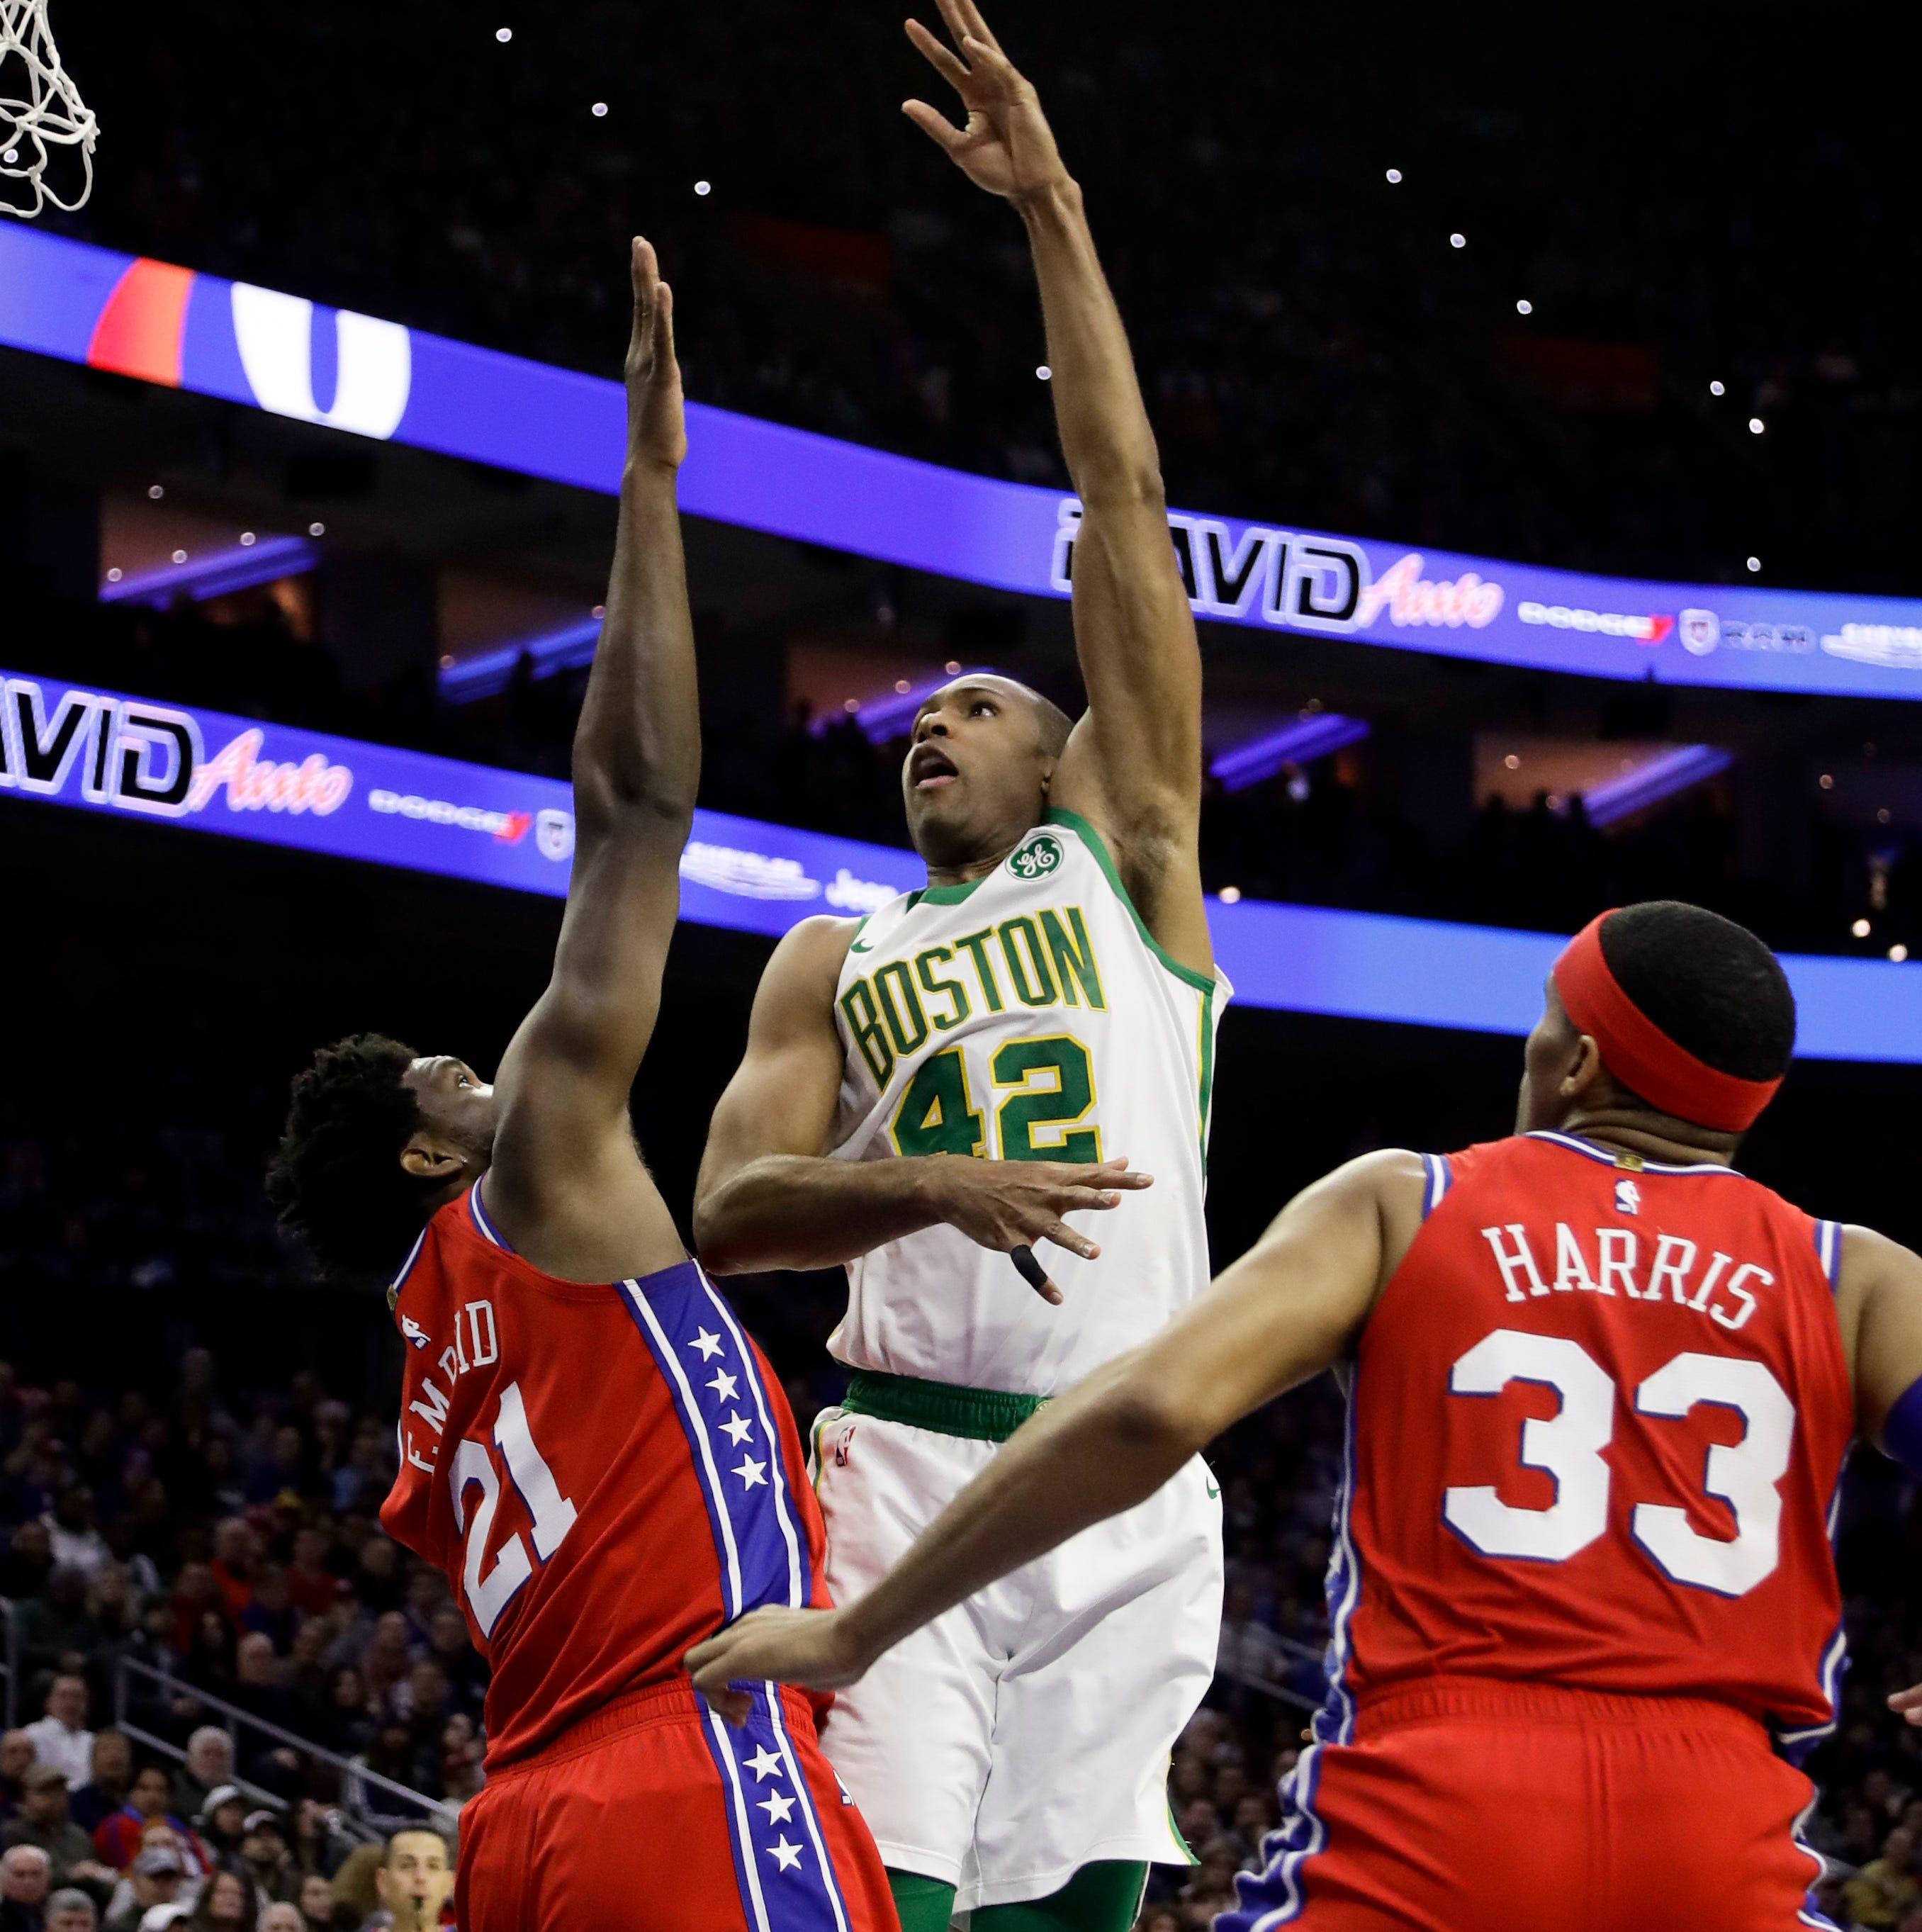 Embiid slams referees, himself in tirade as Sixers' frustration vs. Celtics mounts